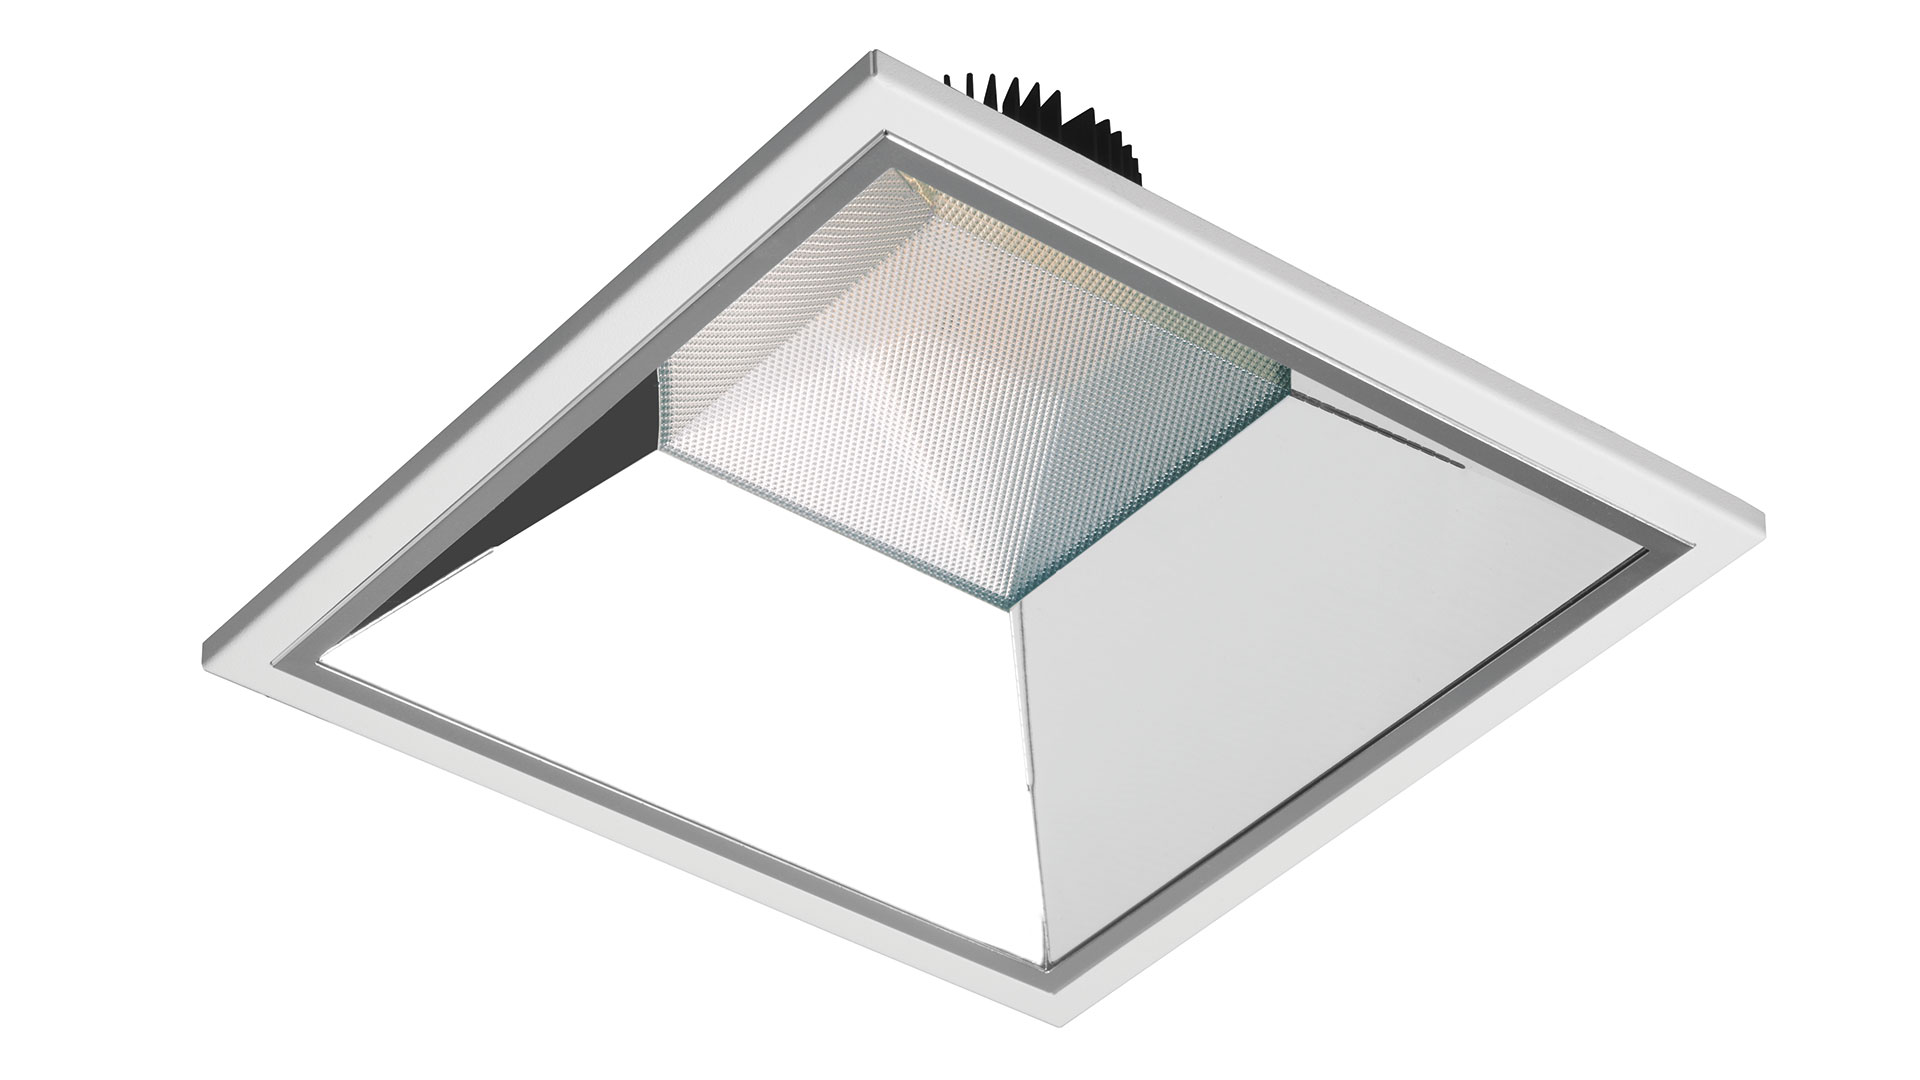 Tiroled dimmbare 30w-nw DEL éclairage routiernormalweiß 4000 K par 2 NEUF